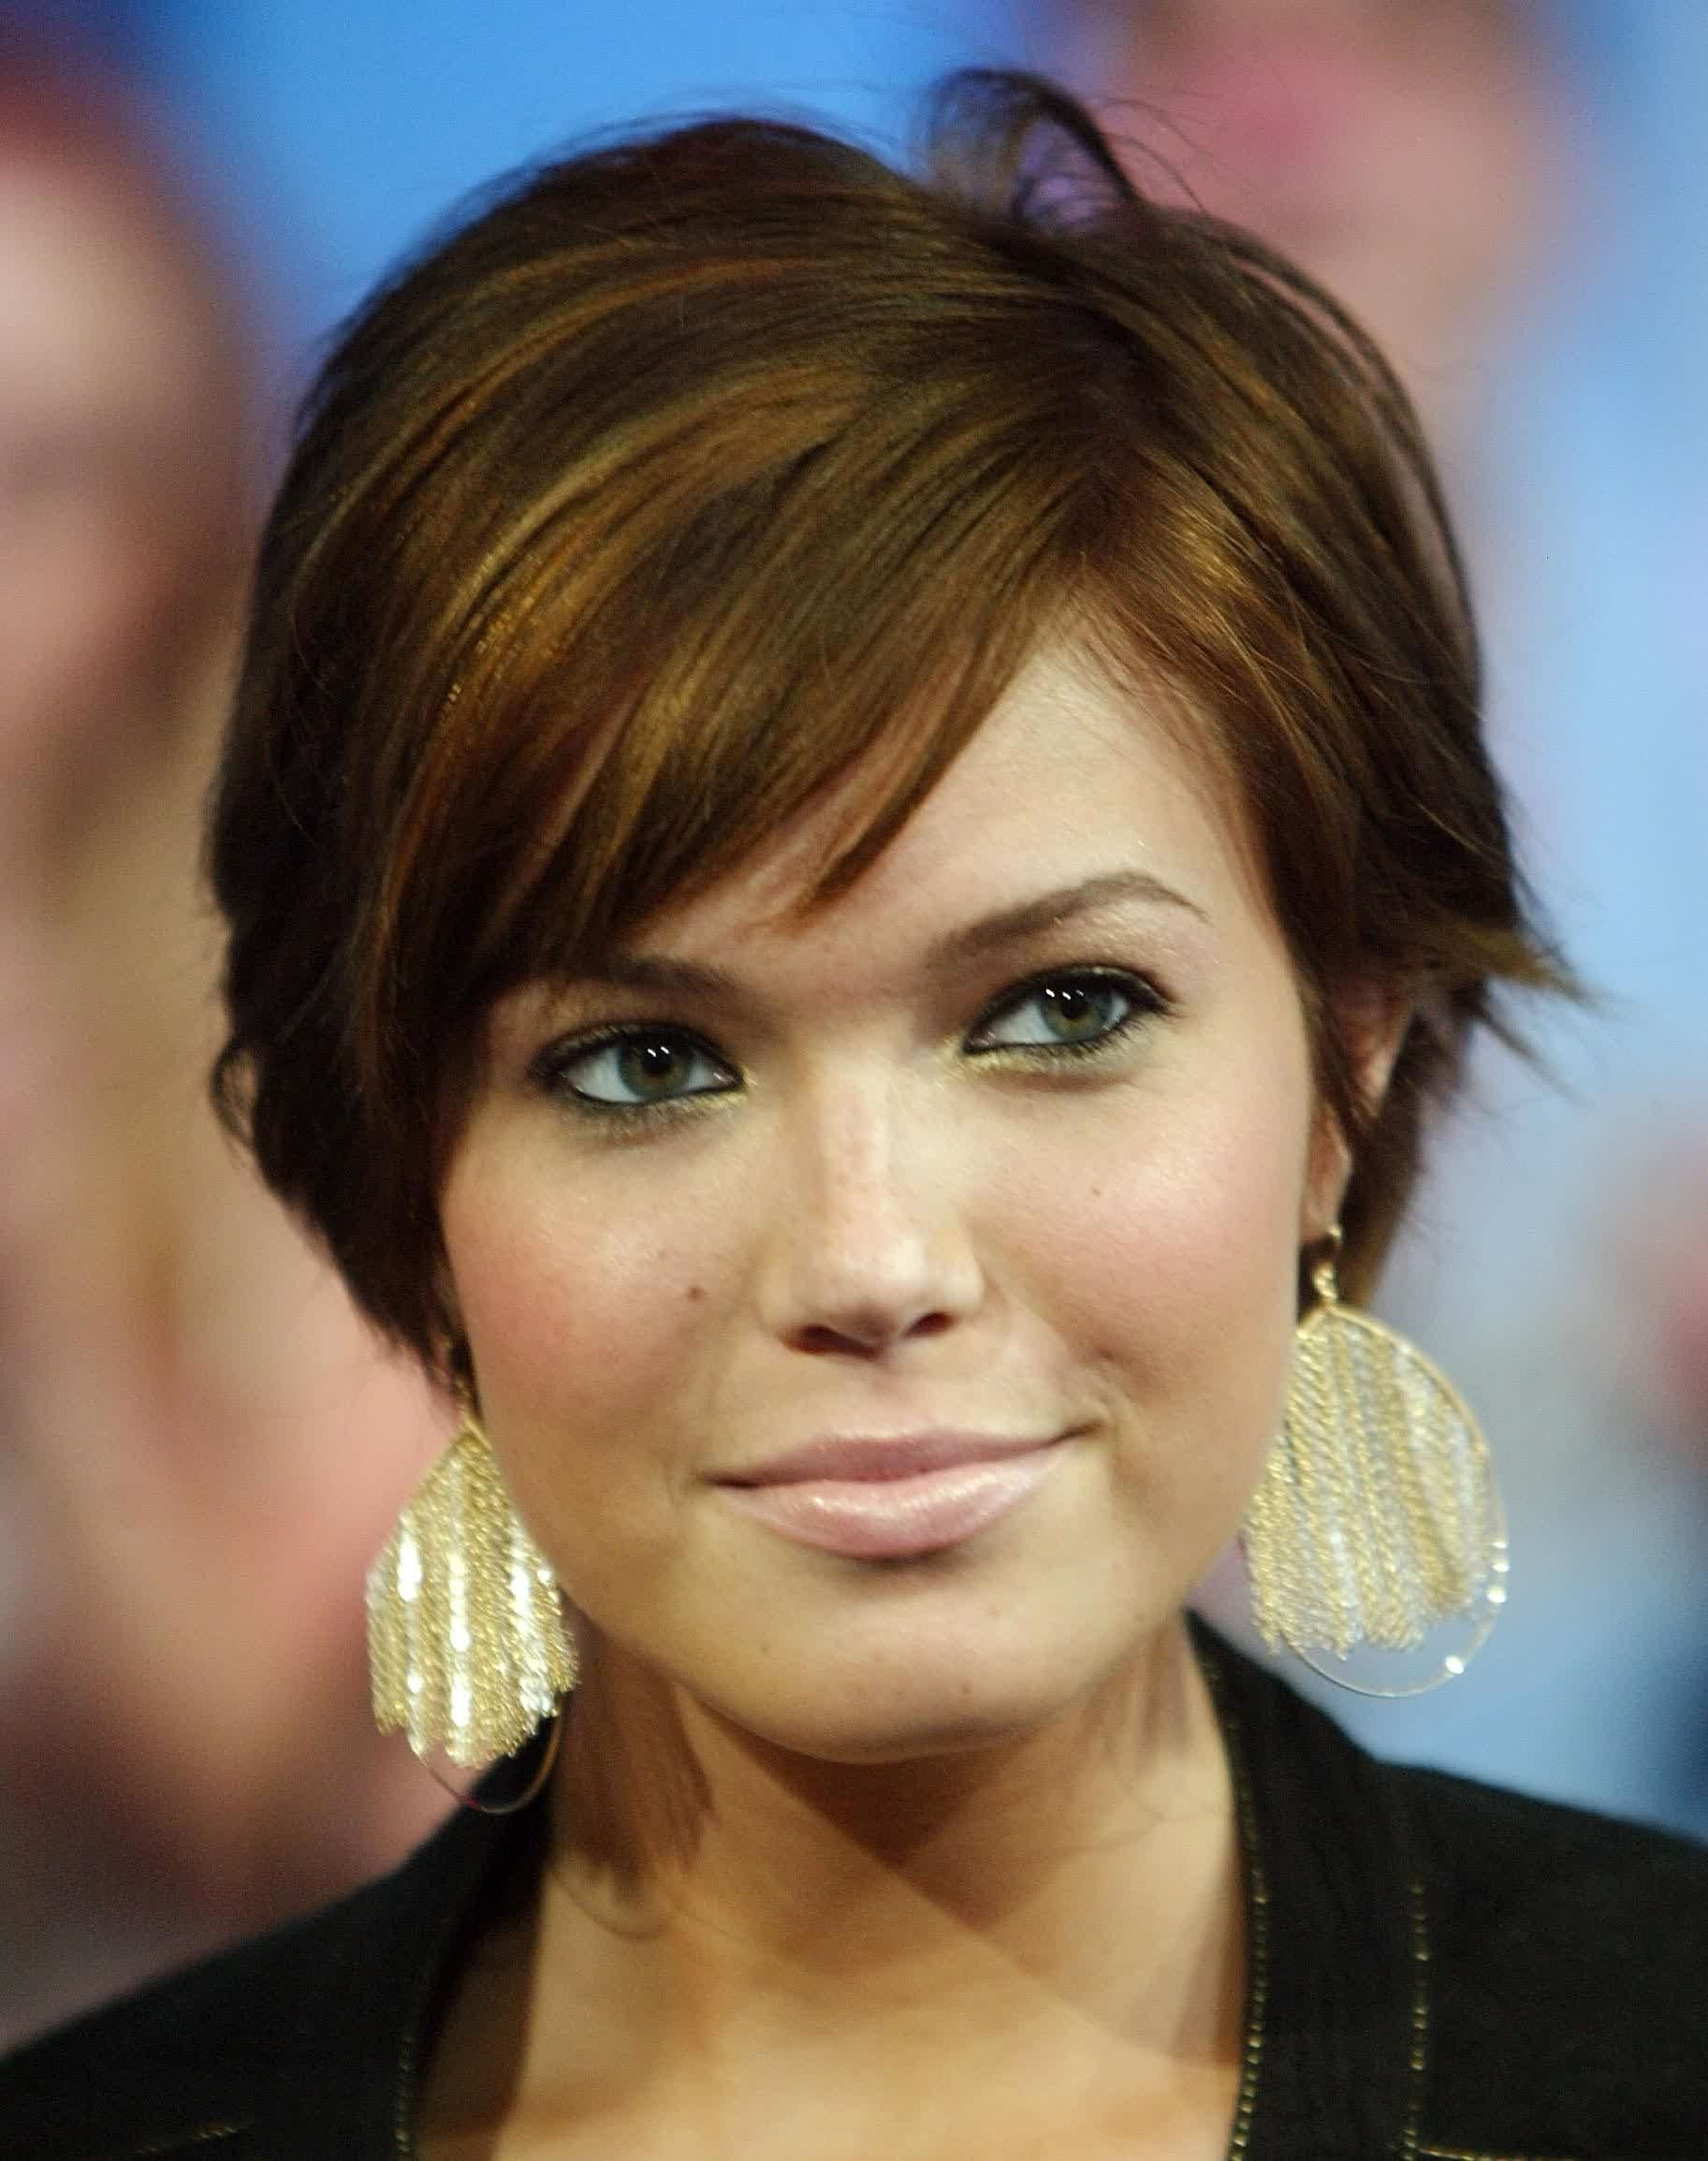 Short Hair With Bangs Round Face Short Hair Round Face With Short Bangs Hairstyles For Round Face Types (View 15 of 20)